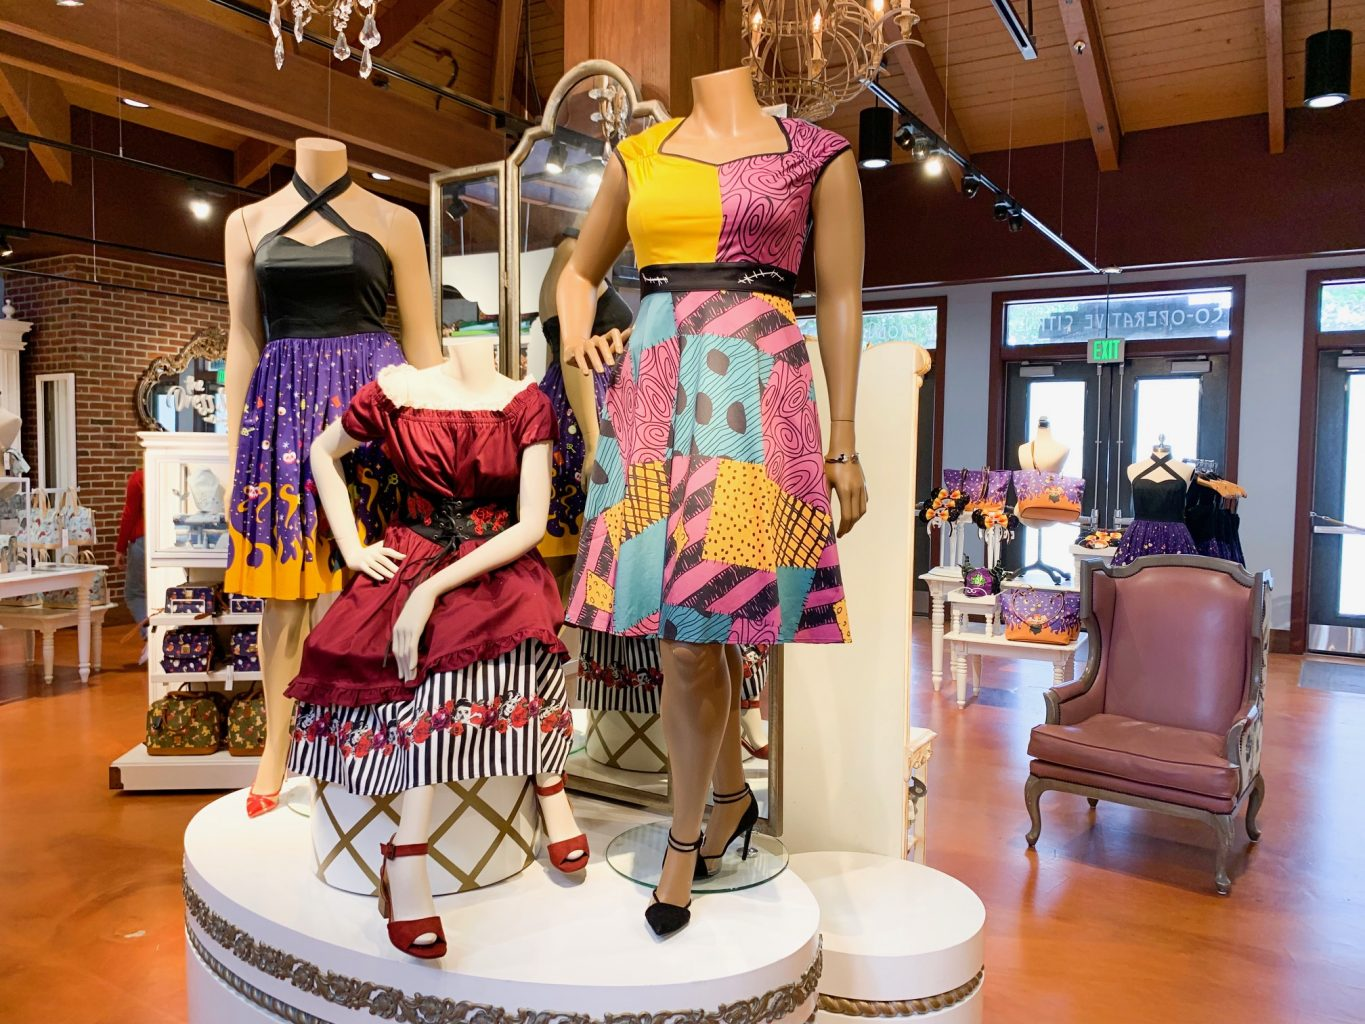 Set of three dresses on display inside the Marketplace Co Op store at Disney Springs. The dress on the far right has a color block yellow and pink top and a pink, yellow, and blue skirt with polka dots in some of the multi colored squares. The middle dress is dark red with a black and white striped under skirt peeking out from the bottom. The far left dress has a black criss-crossed halter top with a purple skirt with a flame pattern on the bottom.